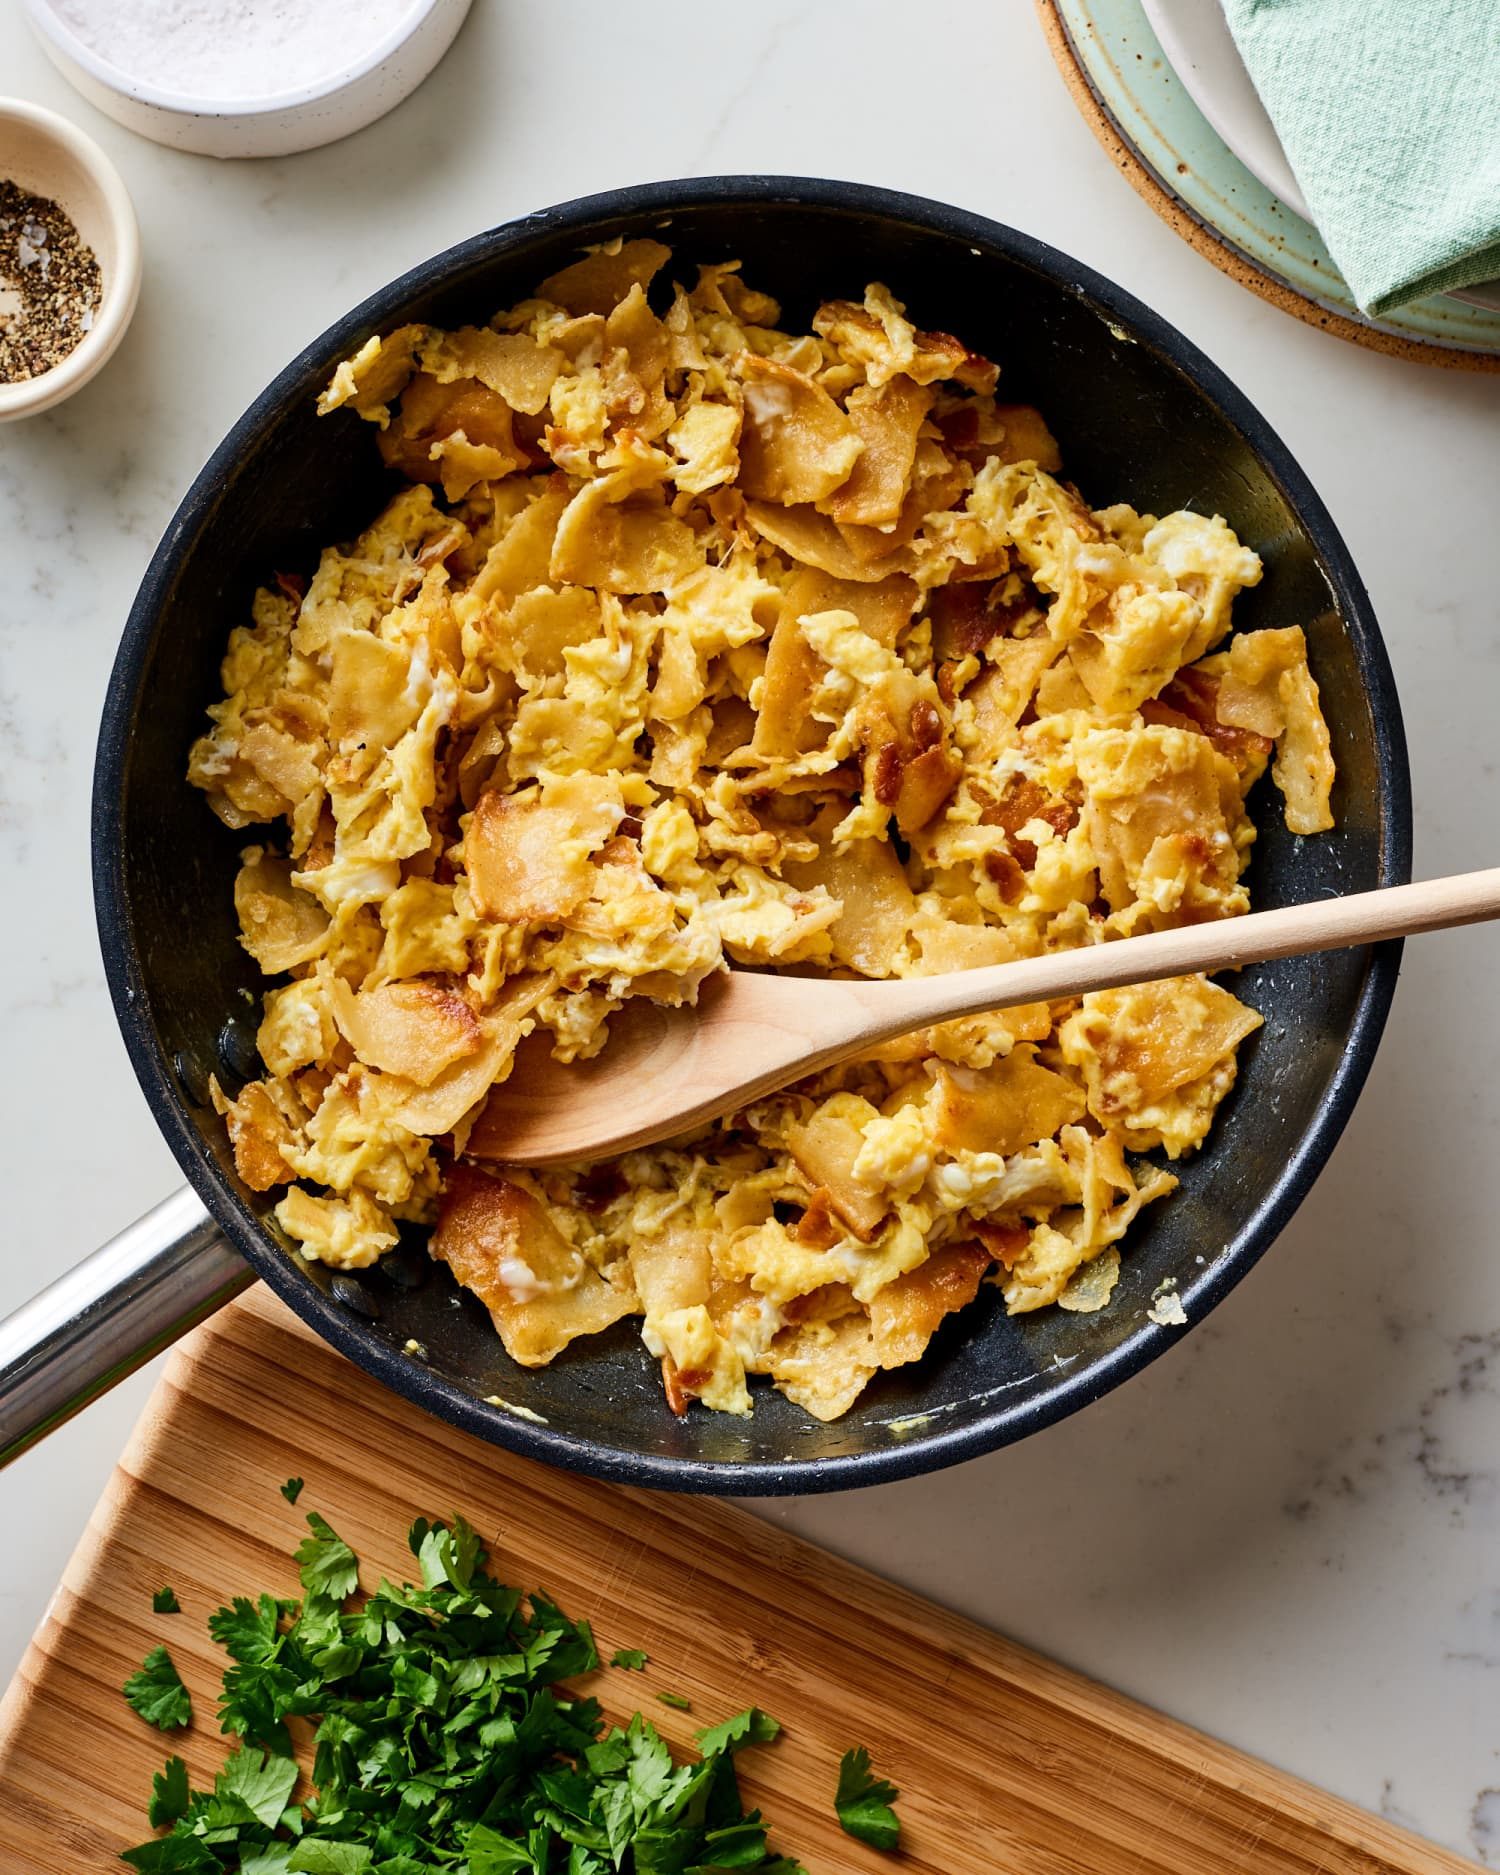 For Better Scrambled Eggs, Make Them the Mexican Way